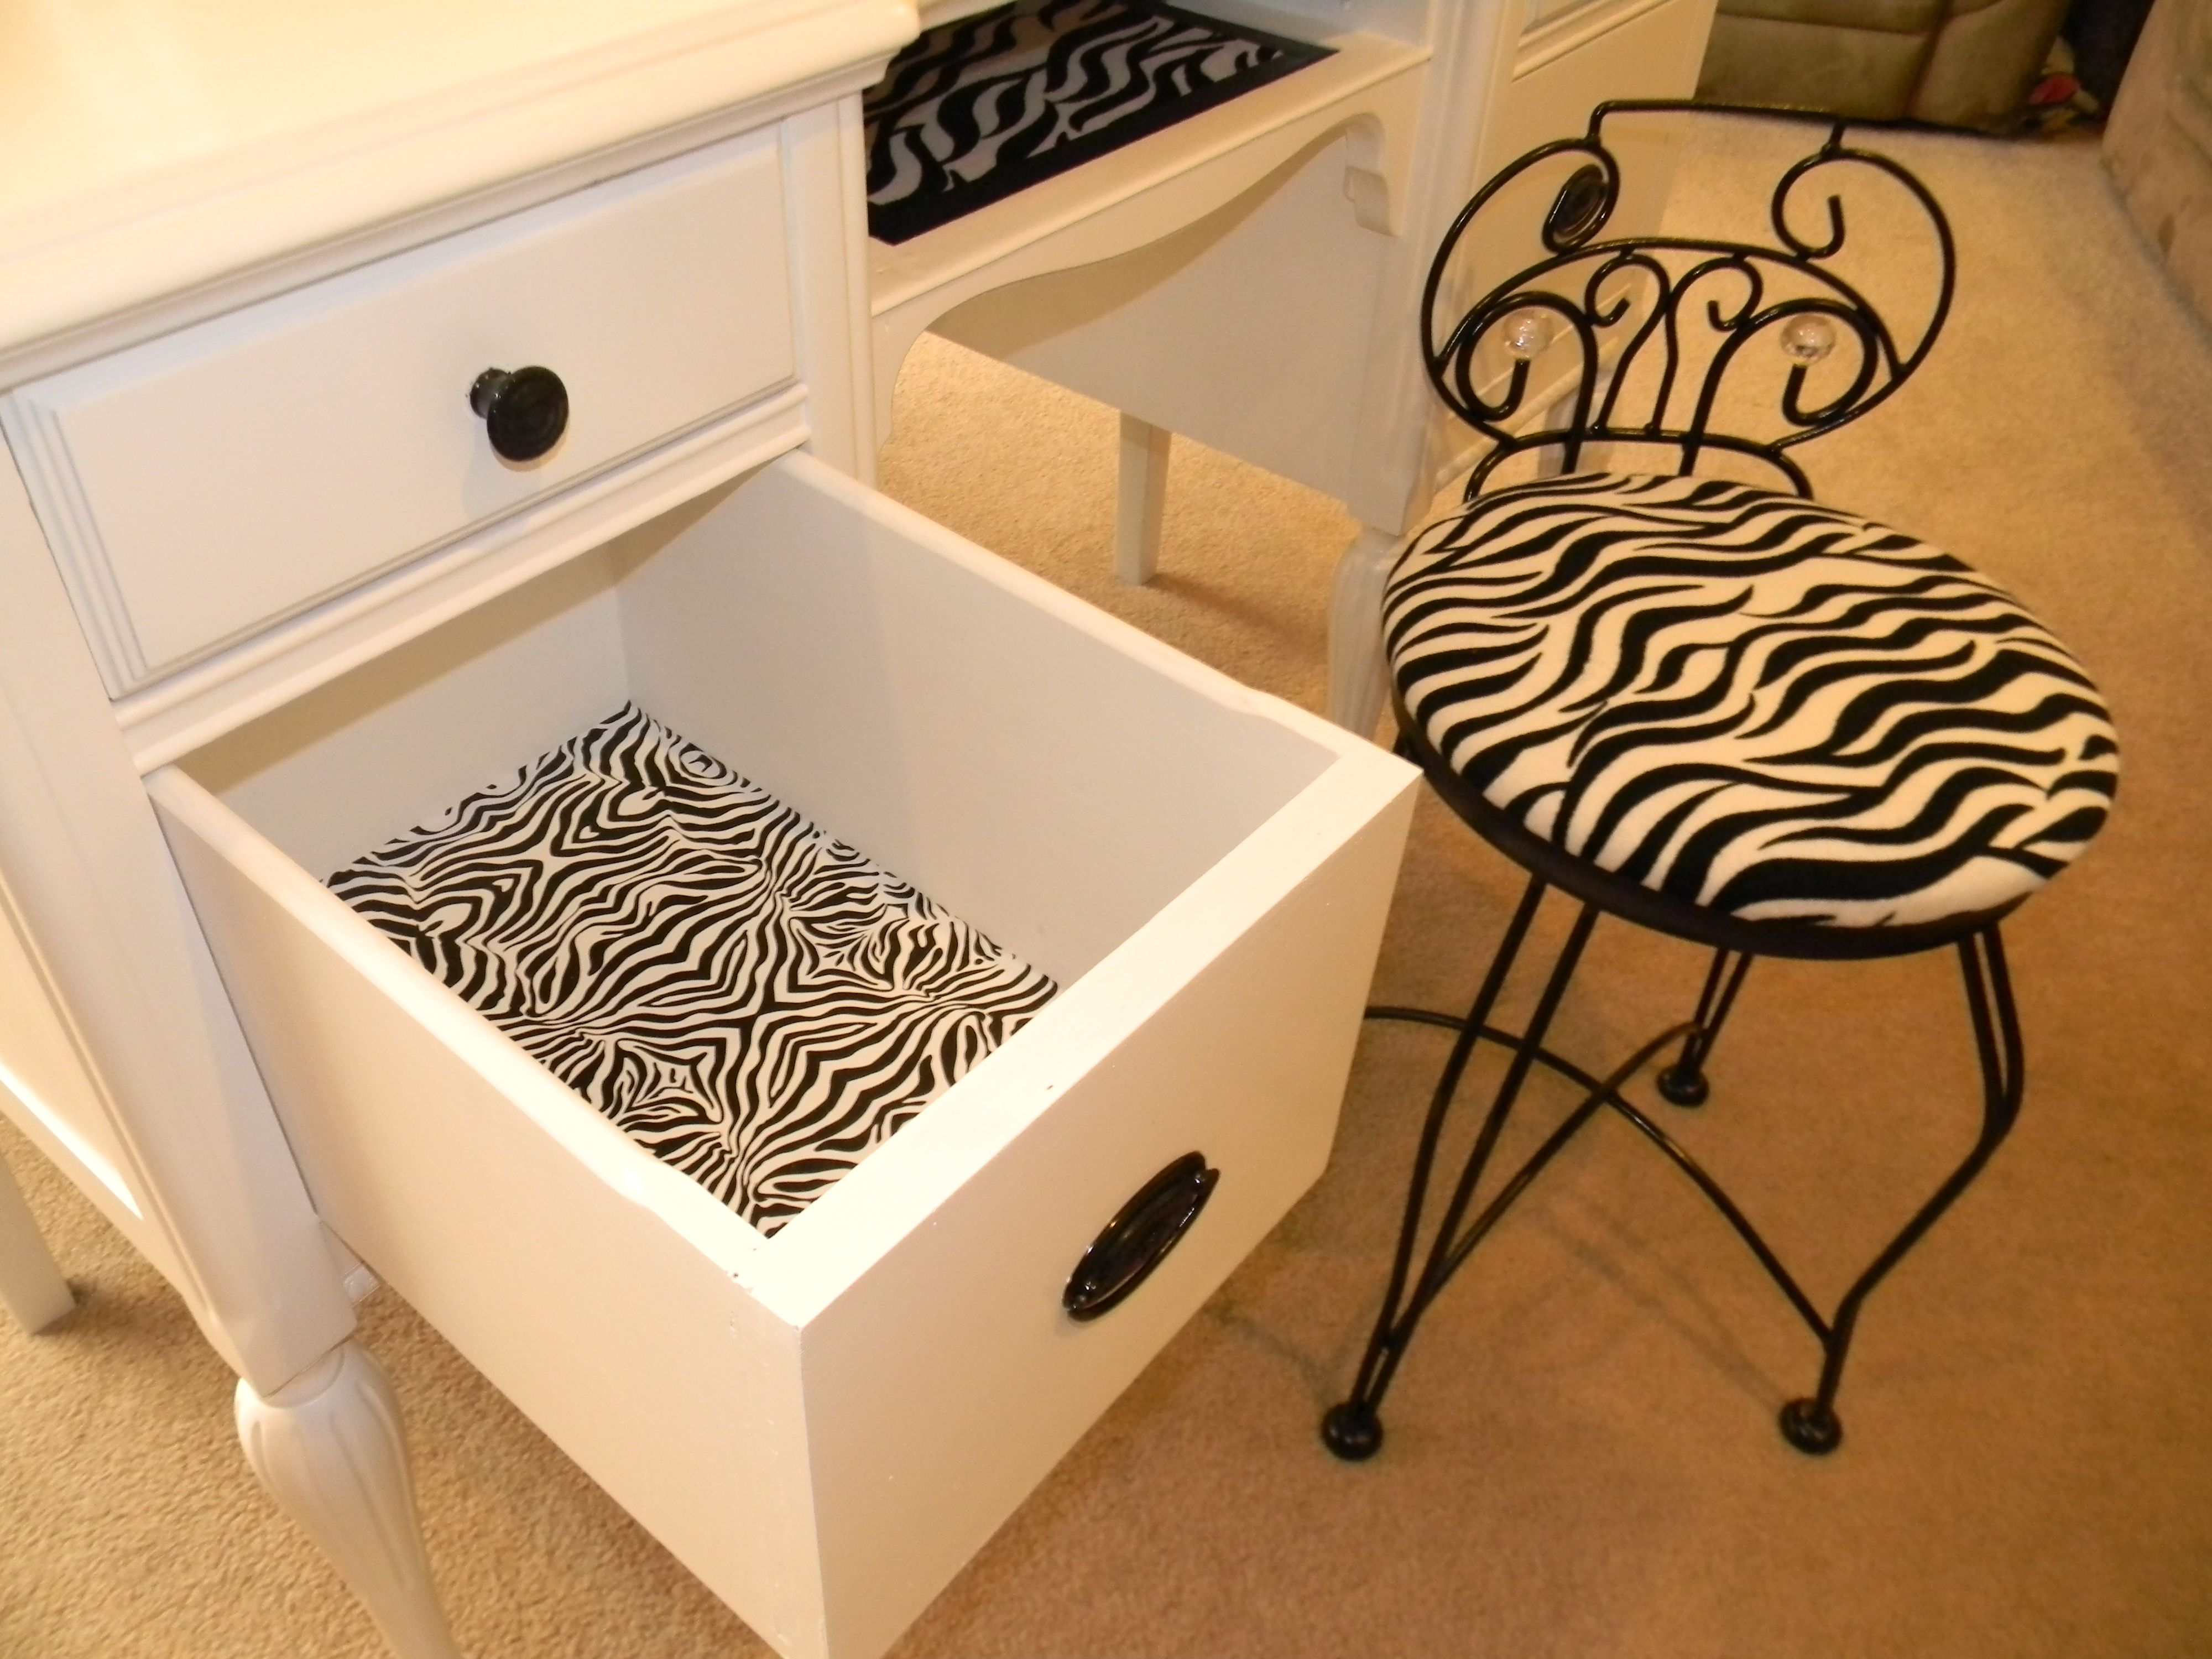 woven repair java paper hobby trends baskets uncategorized drawer and styles drawers a of supplies appealing rope lobby wicker